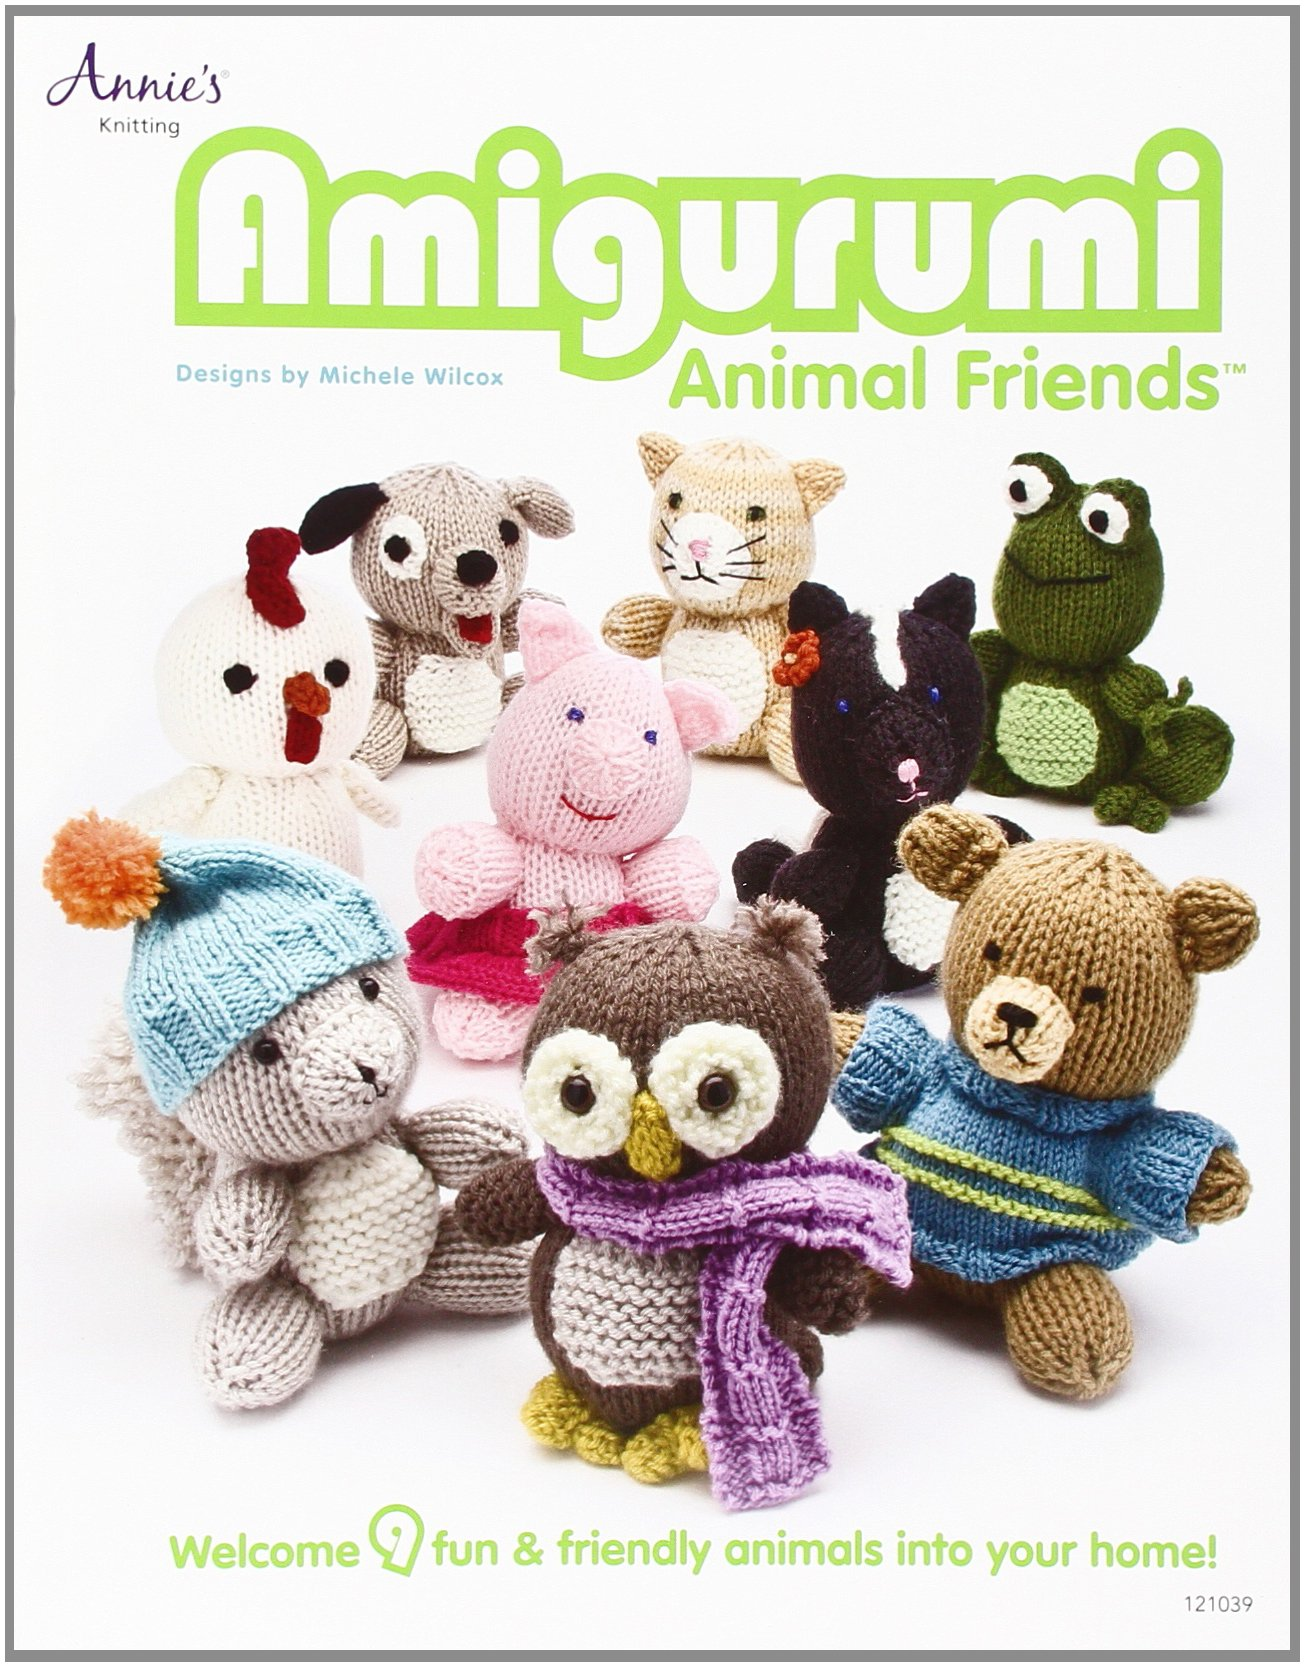 Amigurumi Animal Friends: Amazon.es: Wilcox, Michele: Libros en idiomas extranjeros